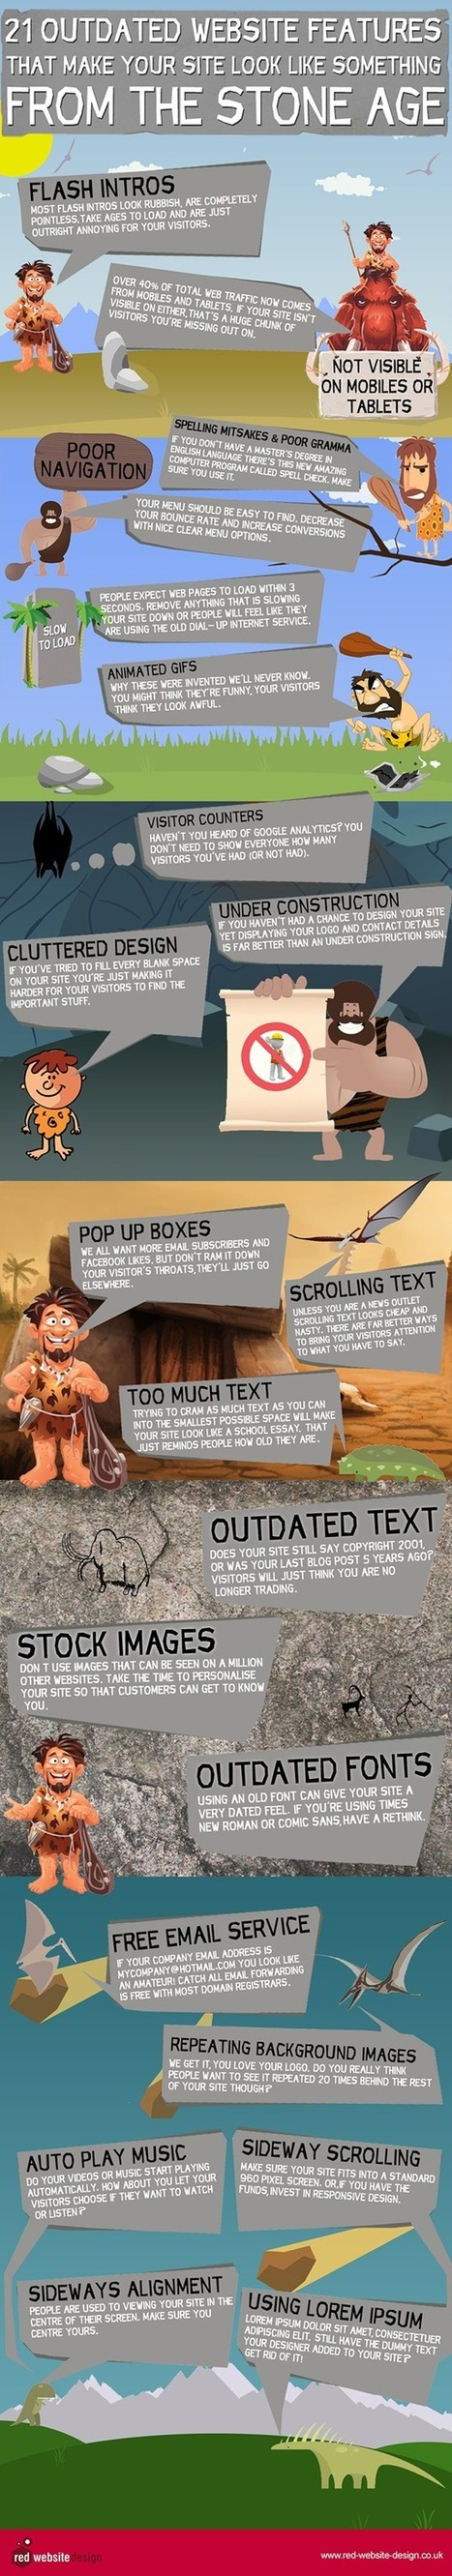 21 Outdated Website Features That Make Your Site Look Like Something from the Stone Age | Web Design | Scoop.it